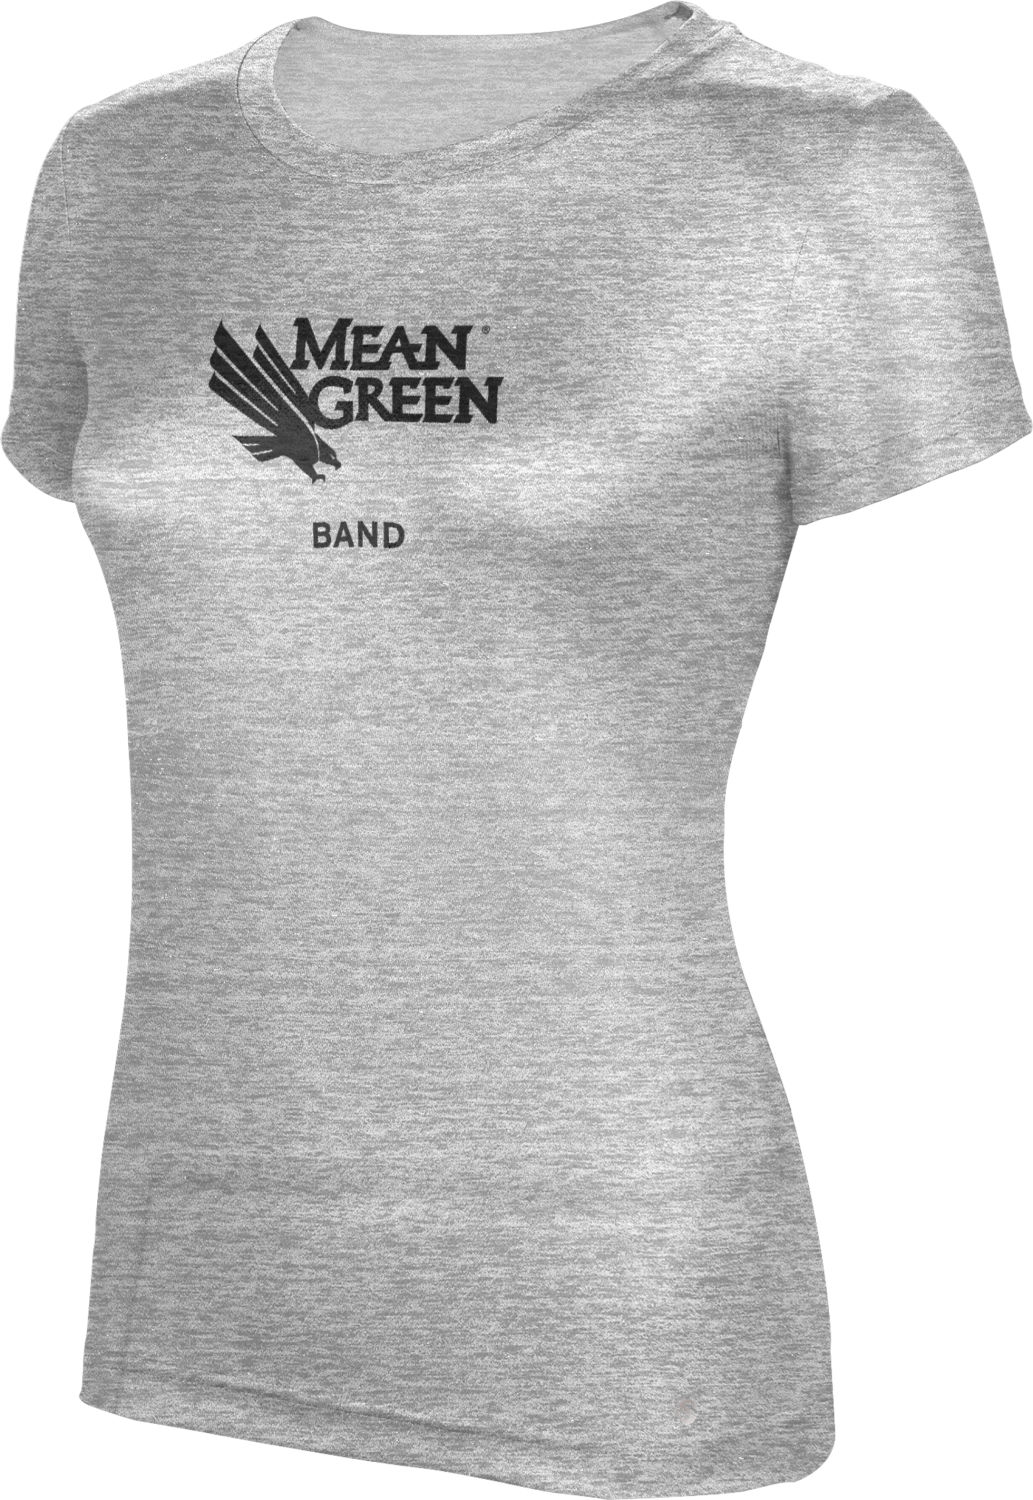 Women's ProSphere Tri-Blend Tee - Band